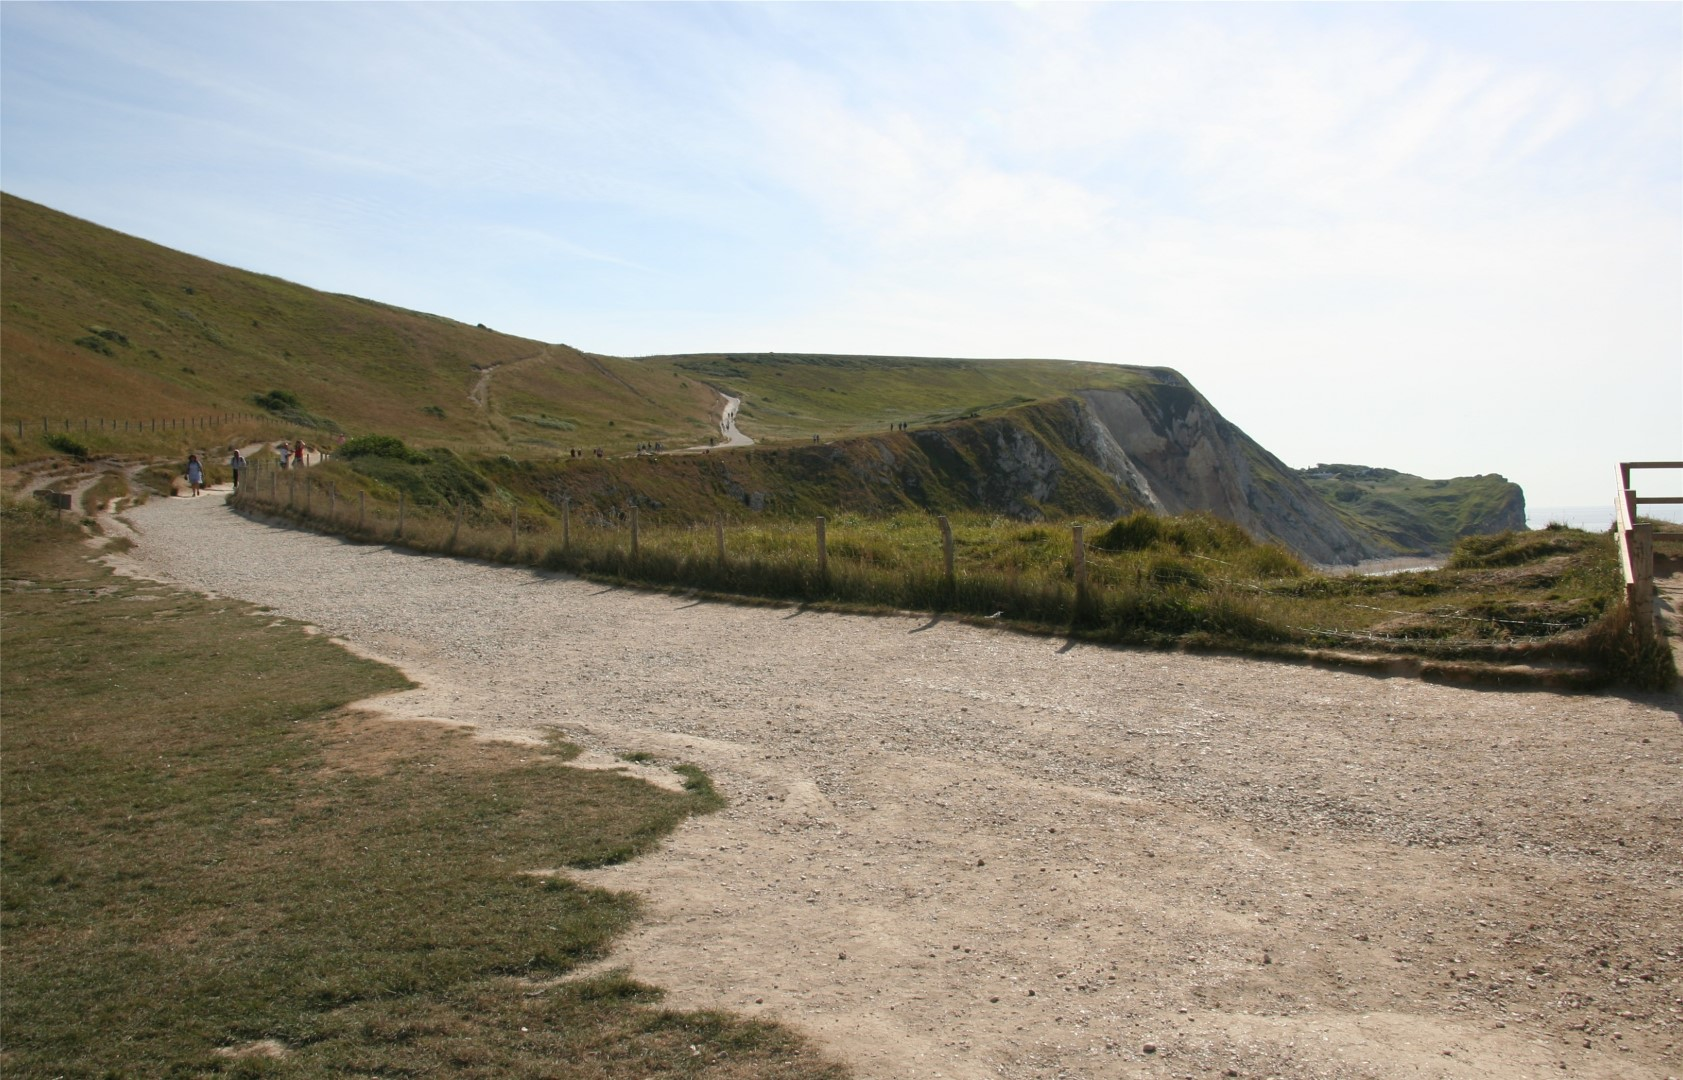 The official path from Lulworth if you don't walk along the beach